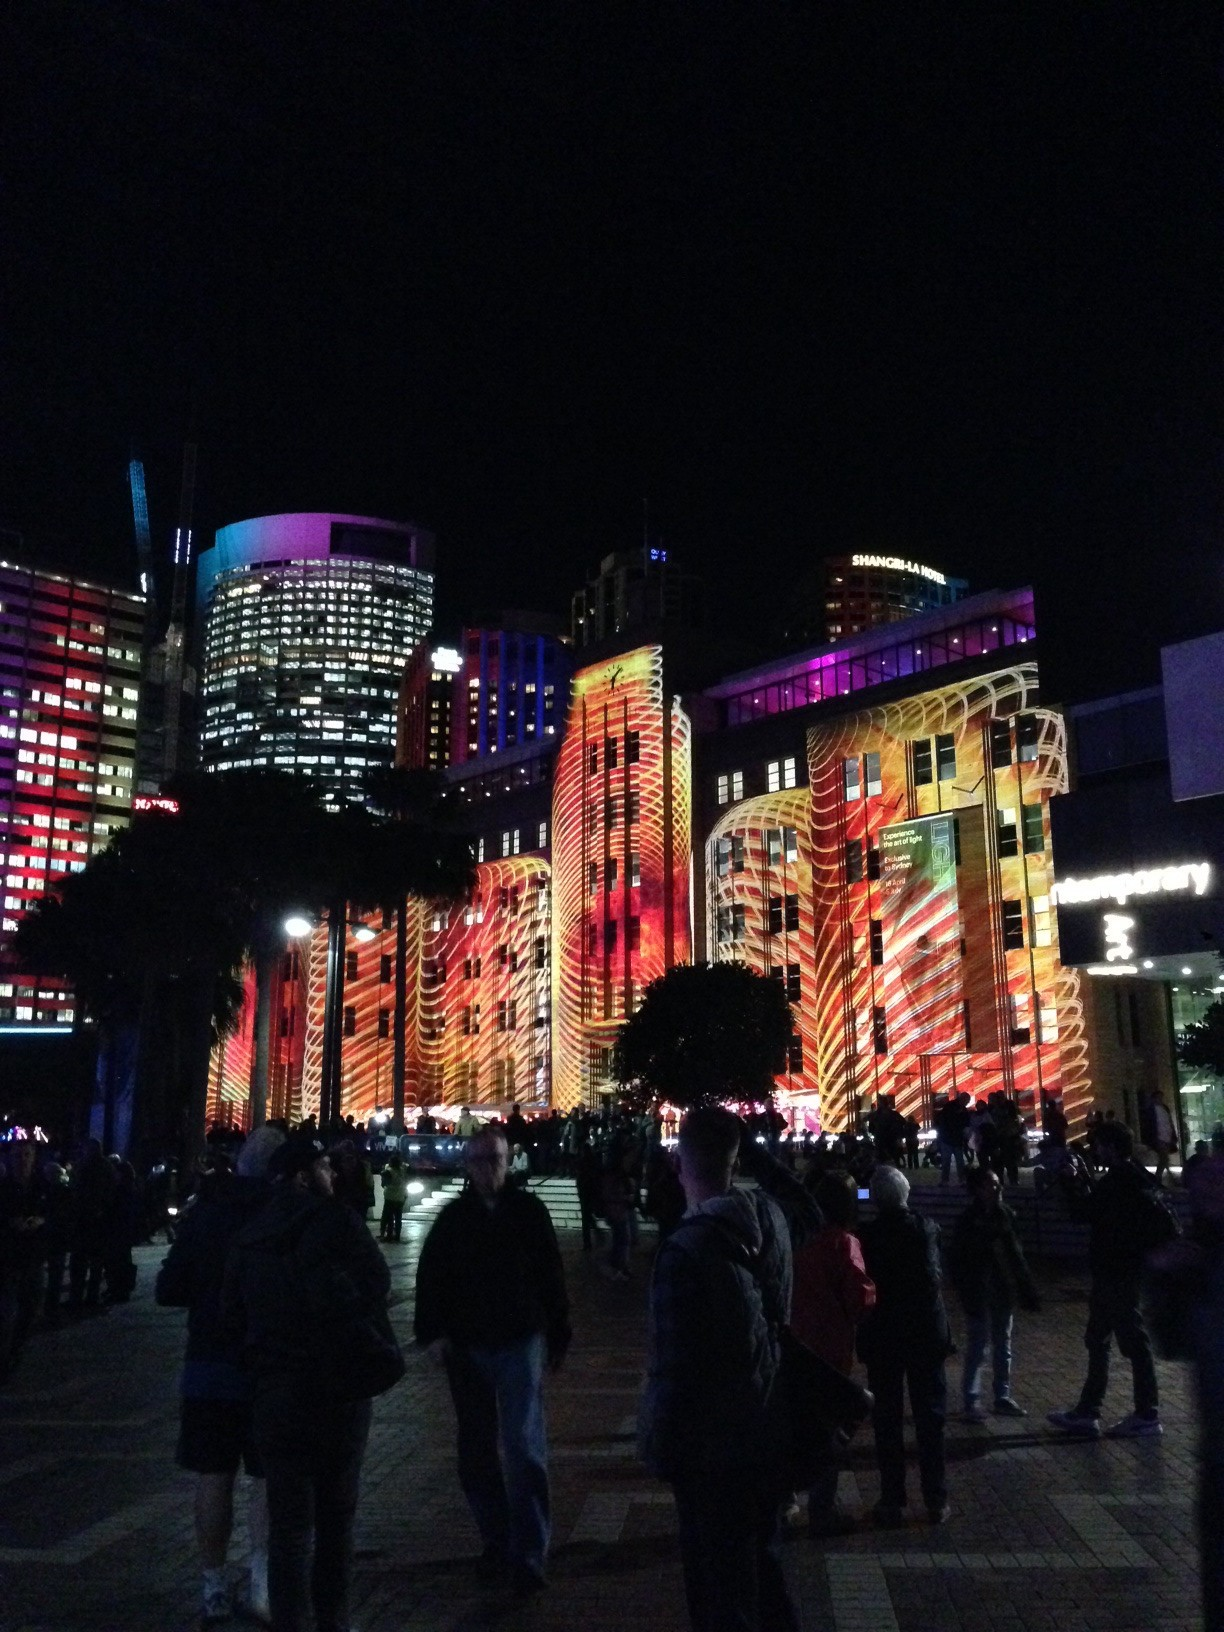 Vivid light display in the harbour - amazing!